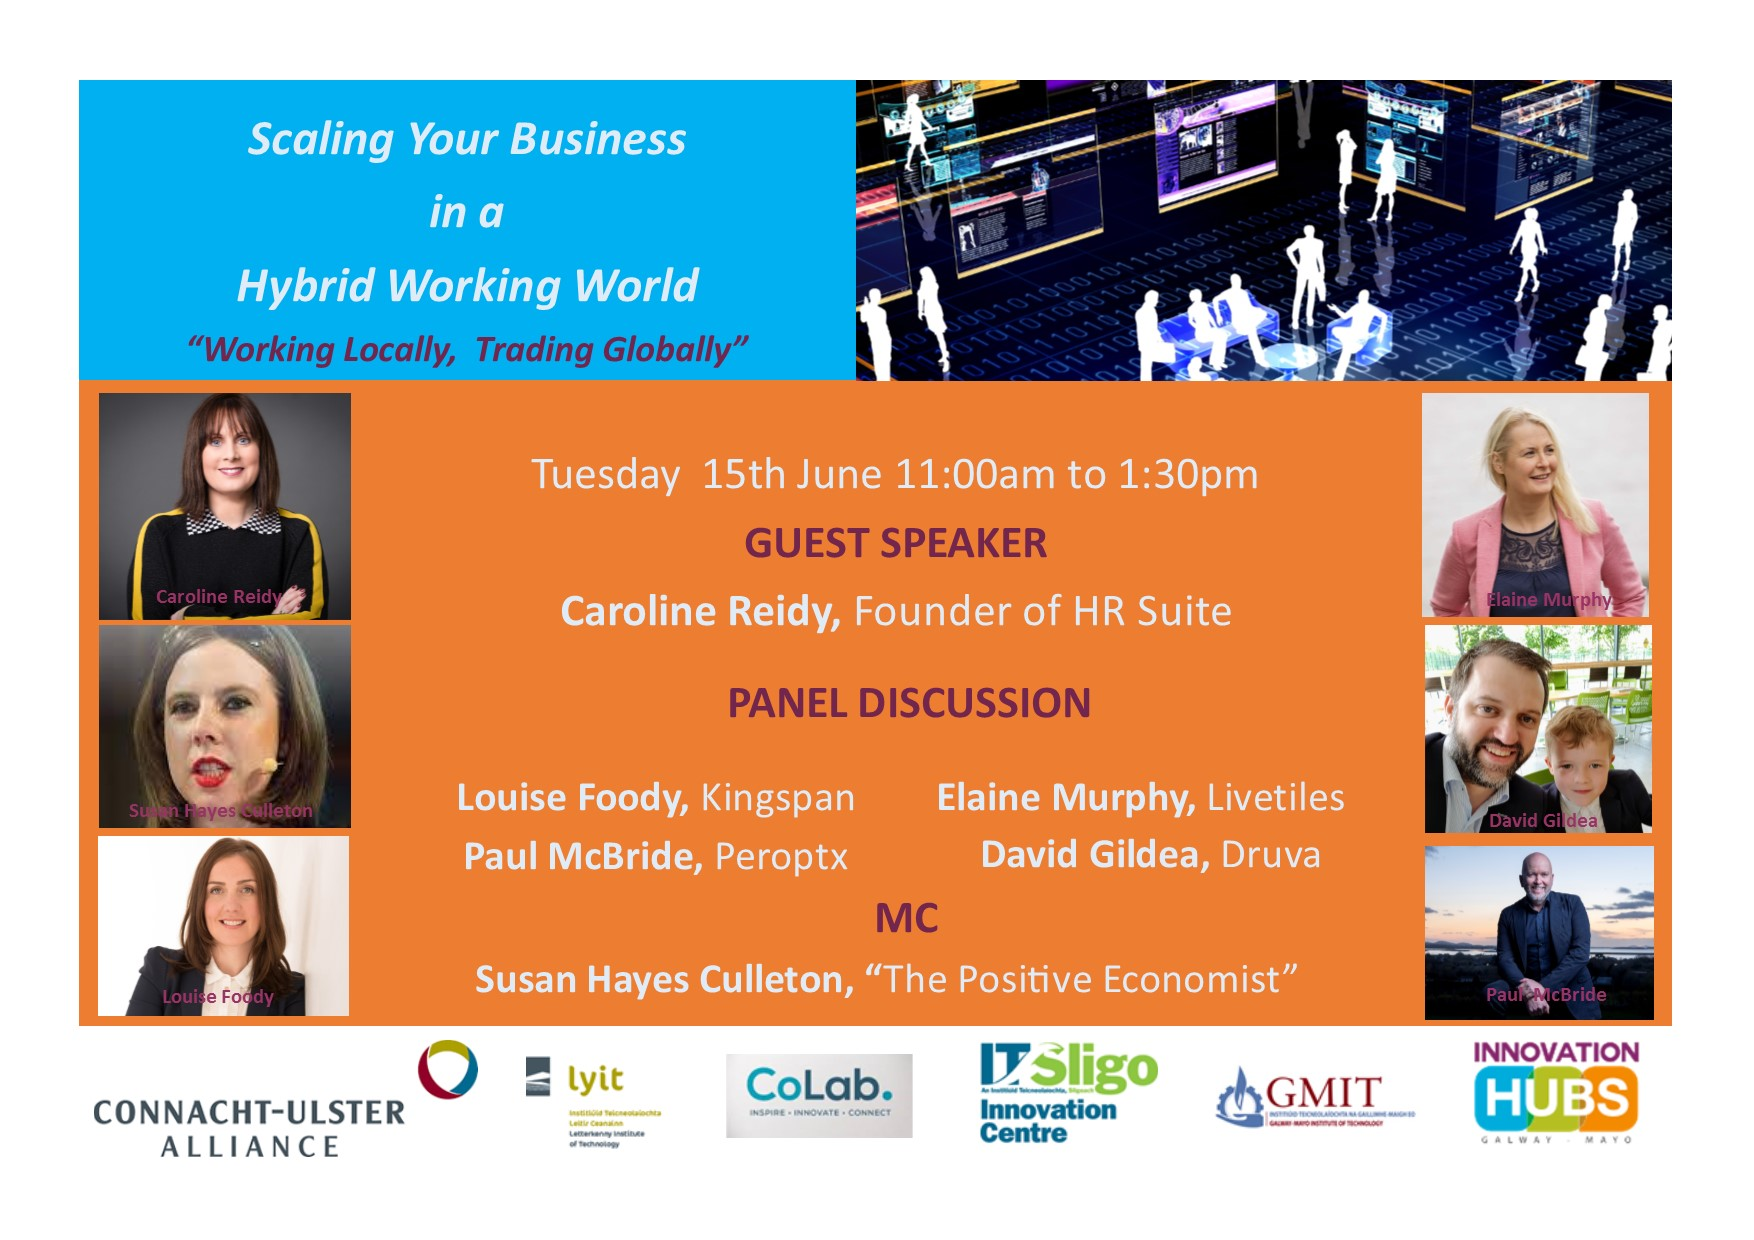 Scaling Your Business in a Hybrid Working World